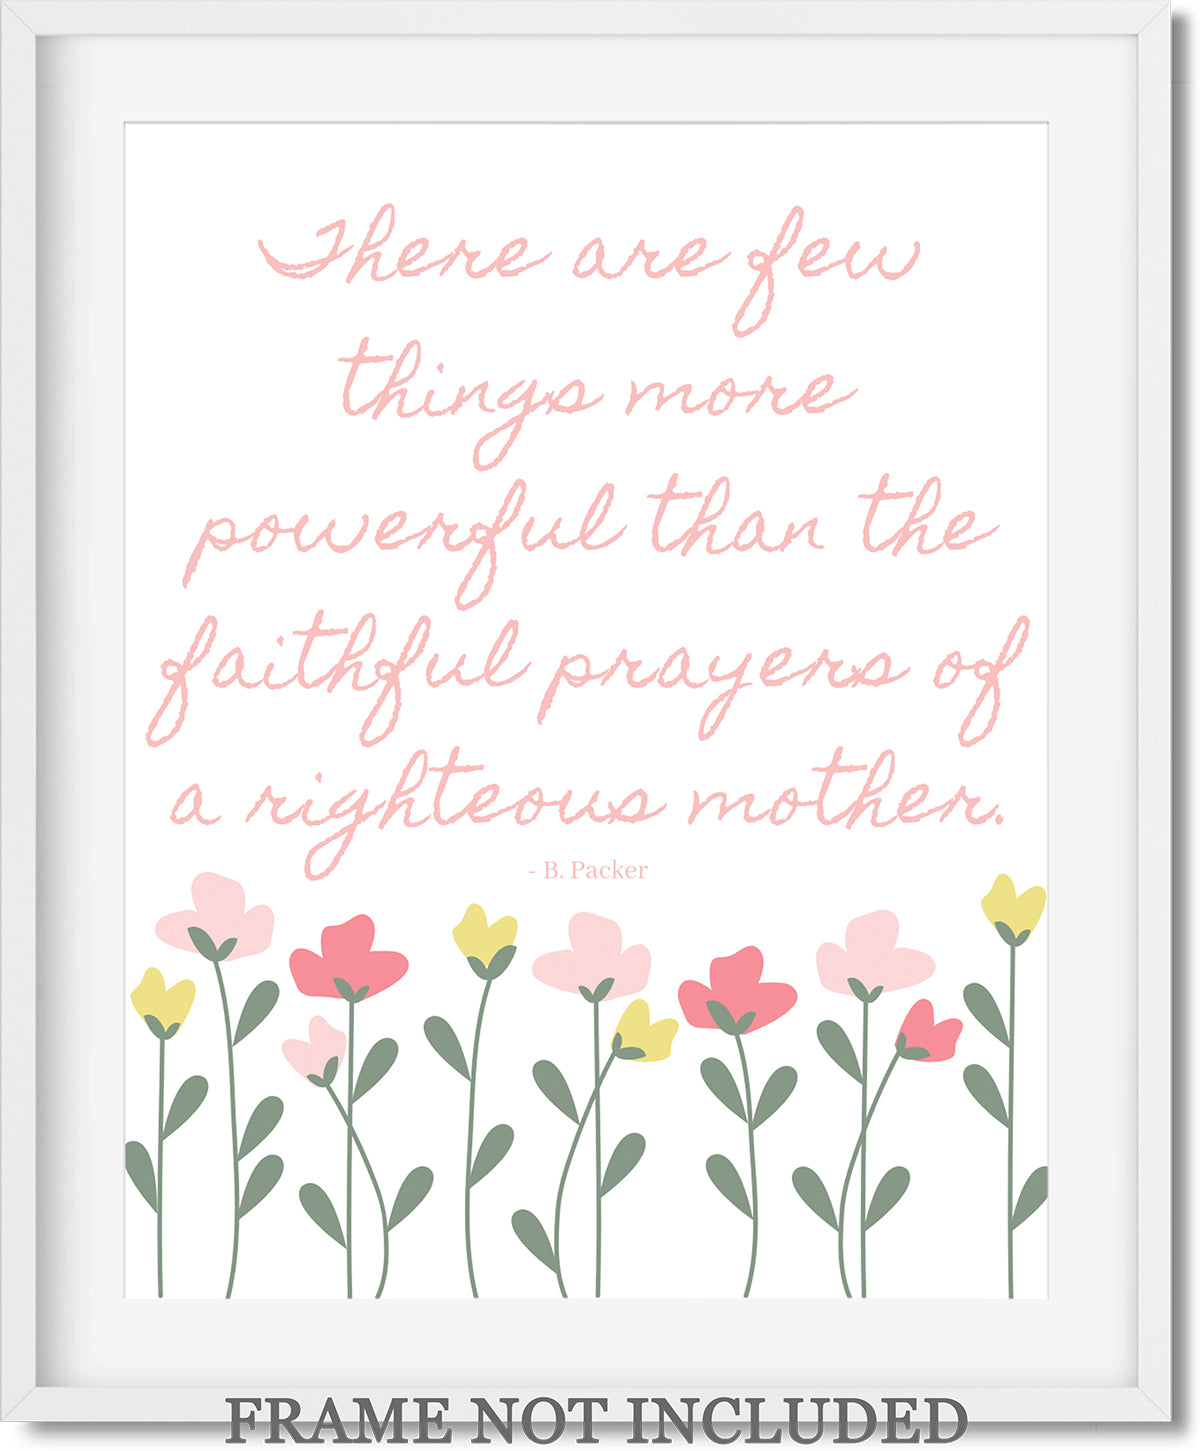 Faithful Prayers Righteous Mother Wall Art Decor Print - 11x14 unframed print for mothers